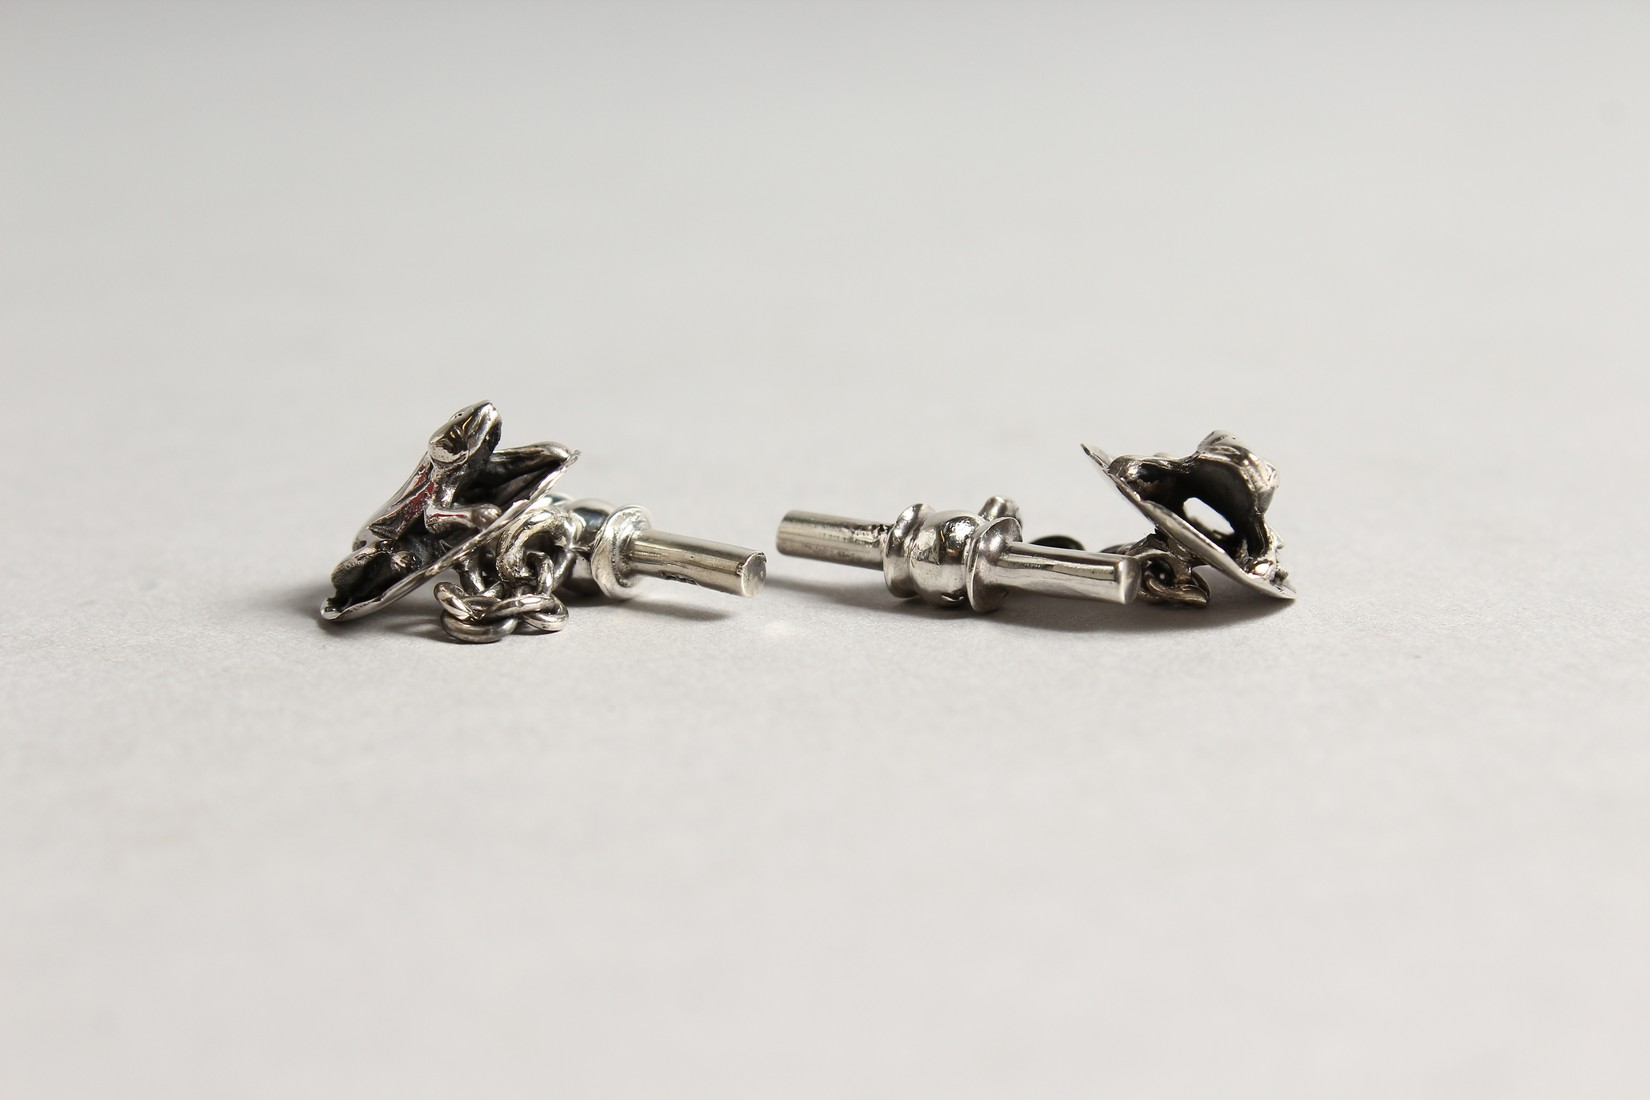 A PAIR OF SILVER FROG AND LILY PAD CUFF LINKS - Image 2 of 3